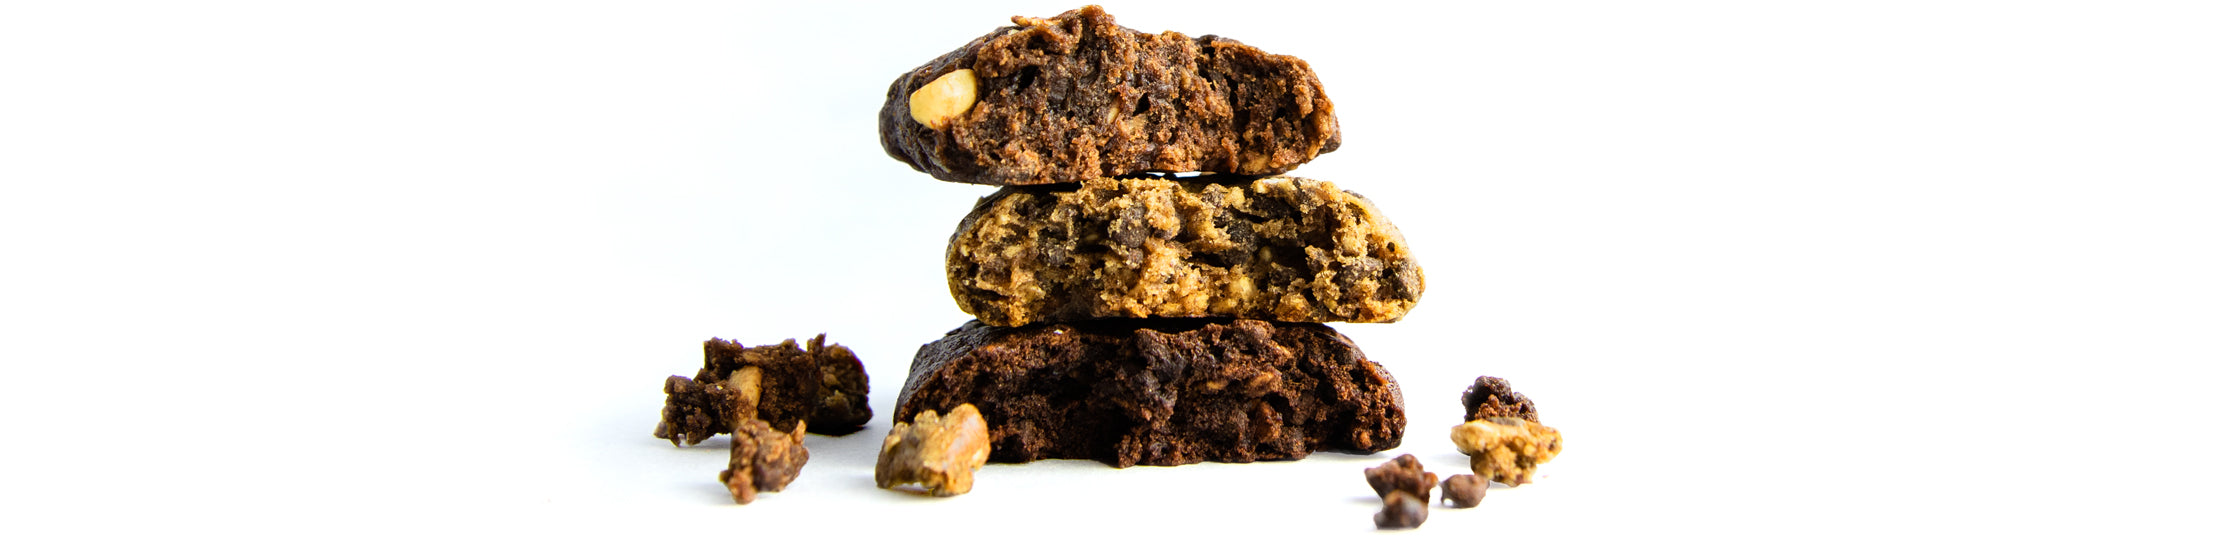 FlapJacked Soft Baked Cookie Bars